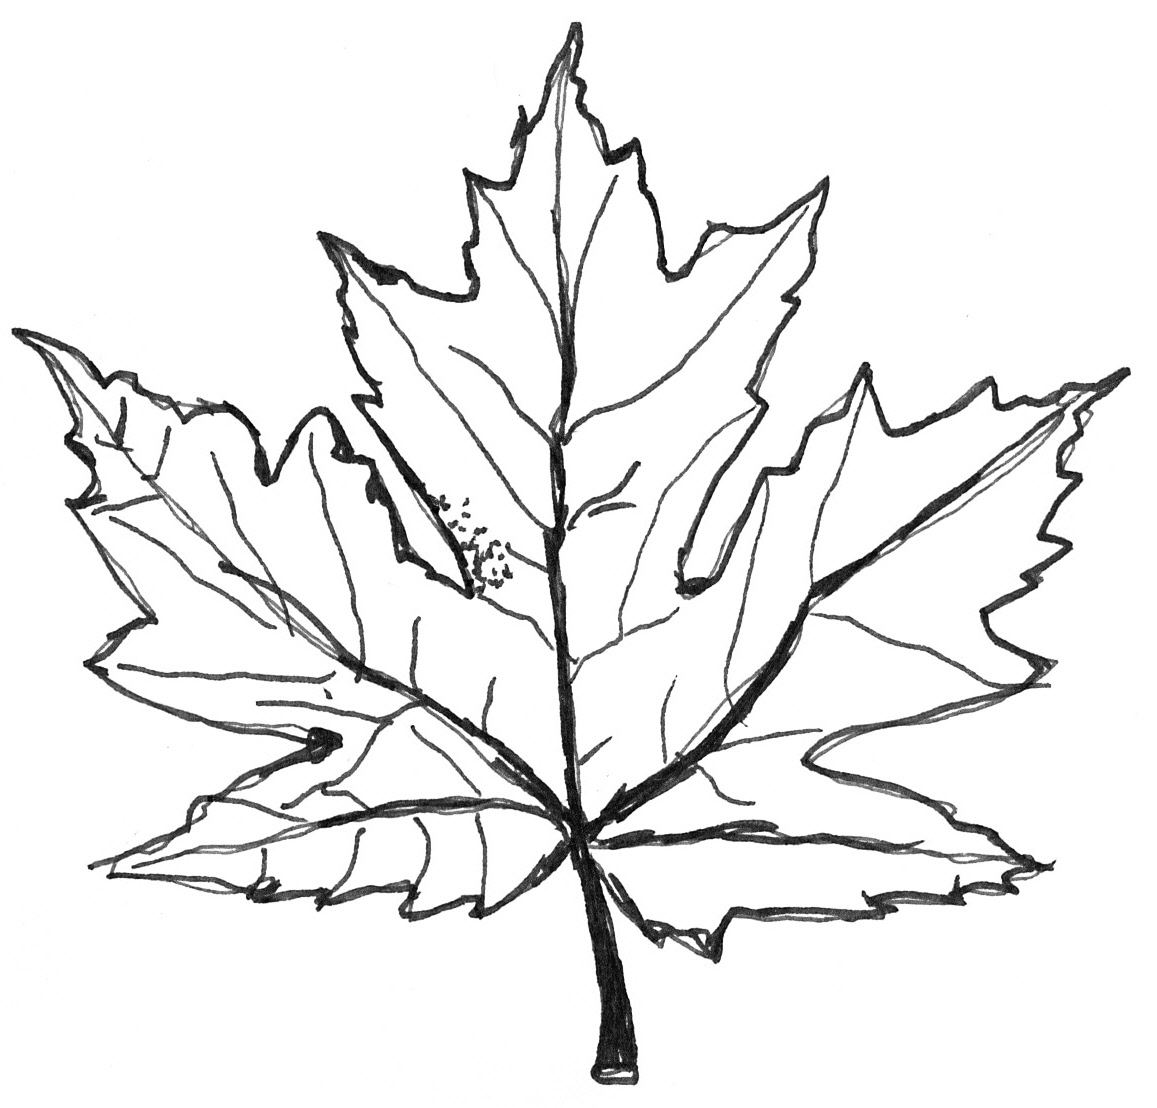 1157x1108 Proven Maple Leaf Coloring Page Drawn Black And White Pencil